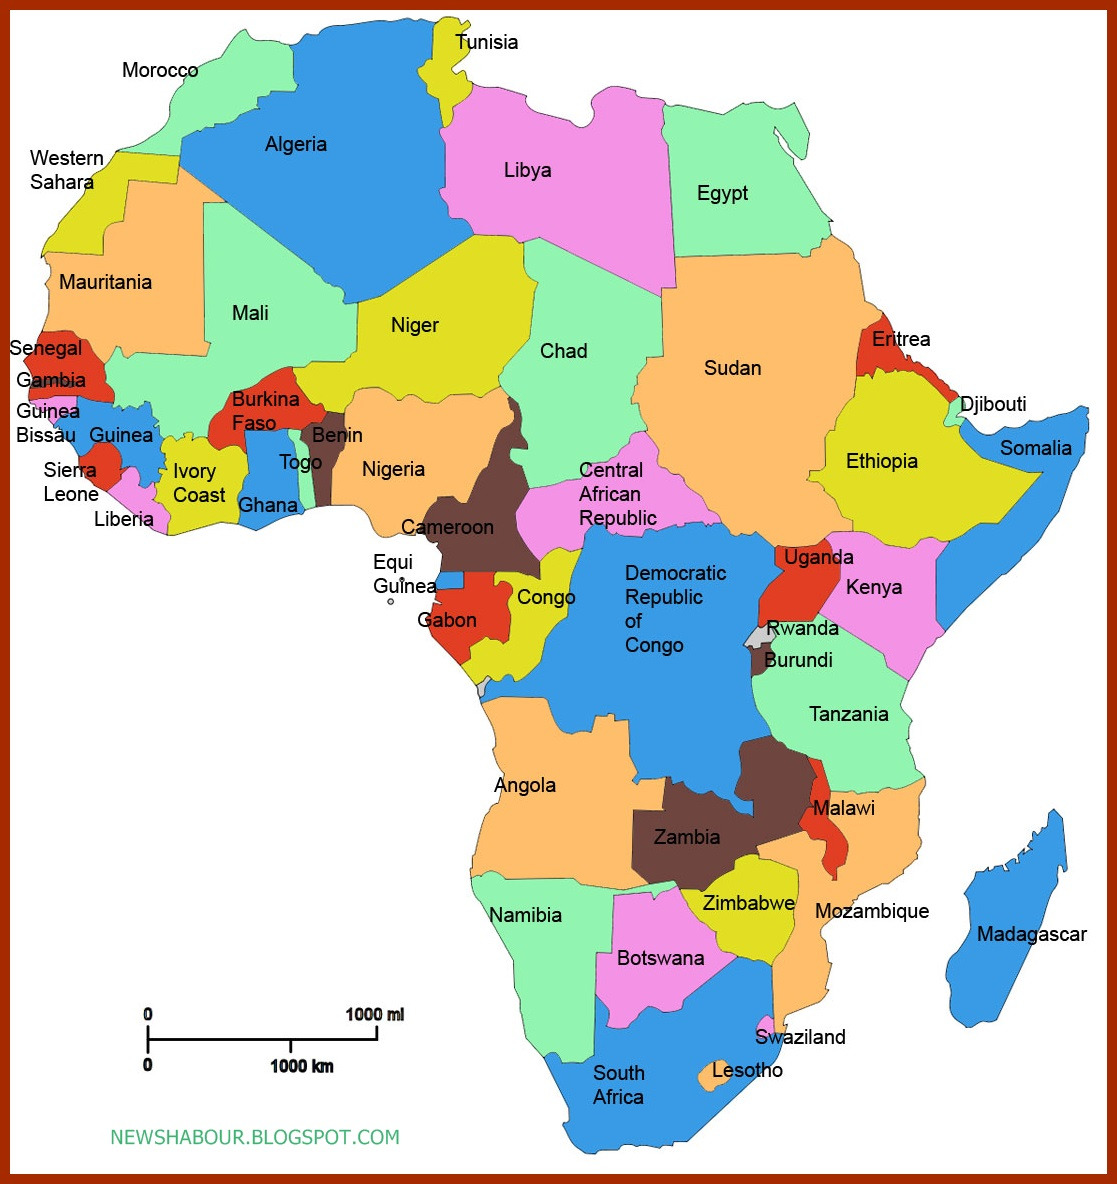 News Habour Checkout The Alphabetical List Of All African